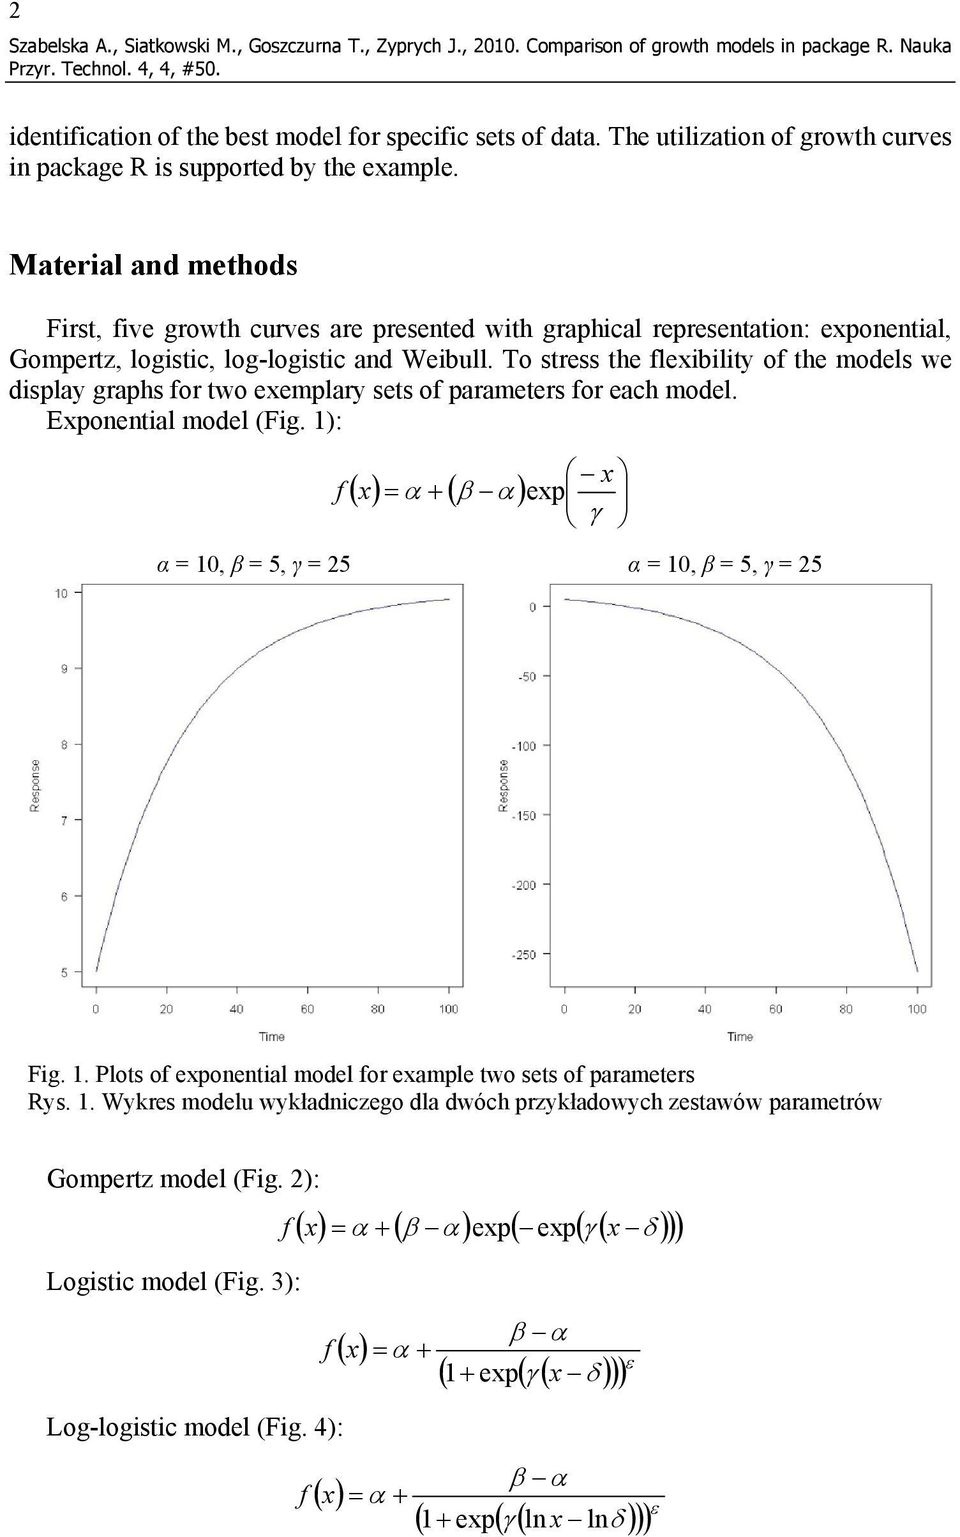 Material and methods First, five growth curves are presented with graphical representation: exponential, Gompertz, logistic, log-logistic and Weibull.